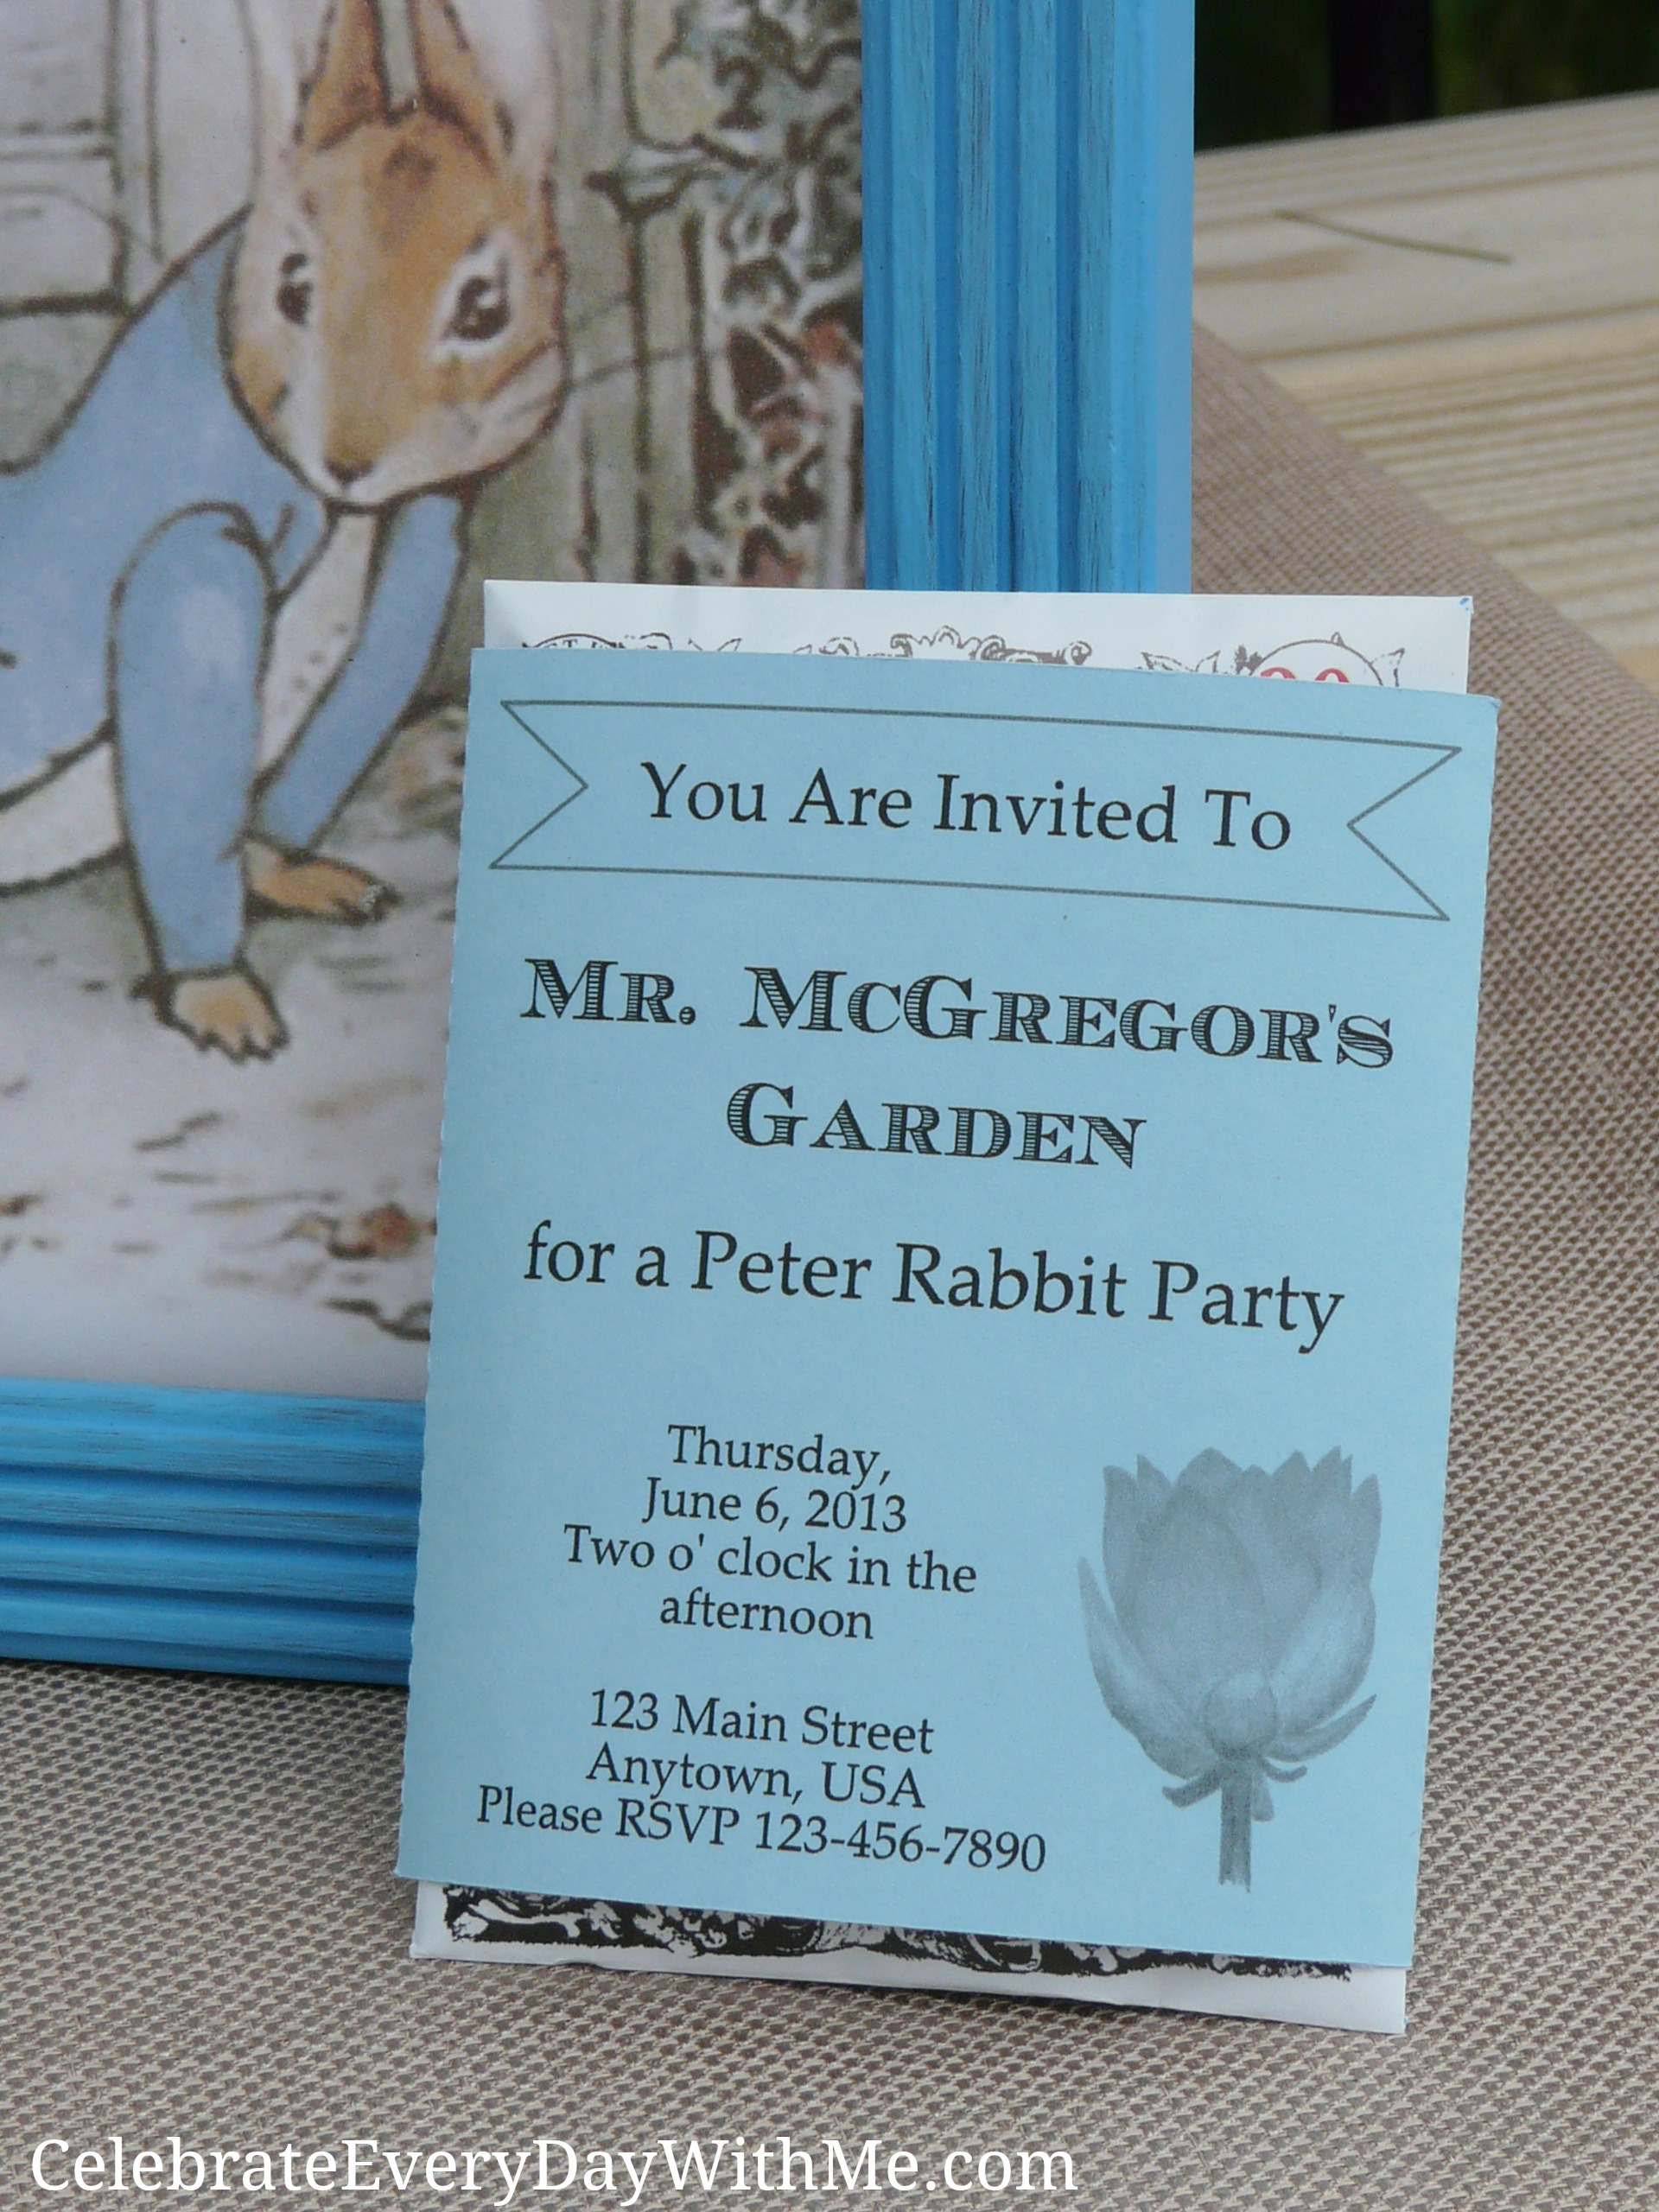 A Peter Rabbit Party {part 2} | Celebrate Every Day With Me